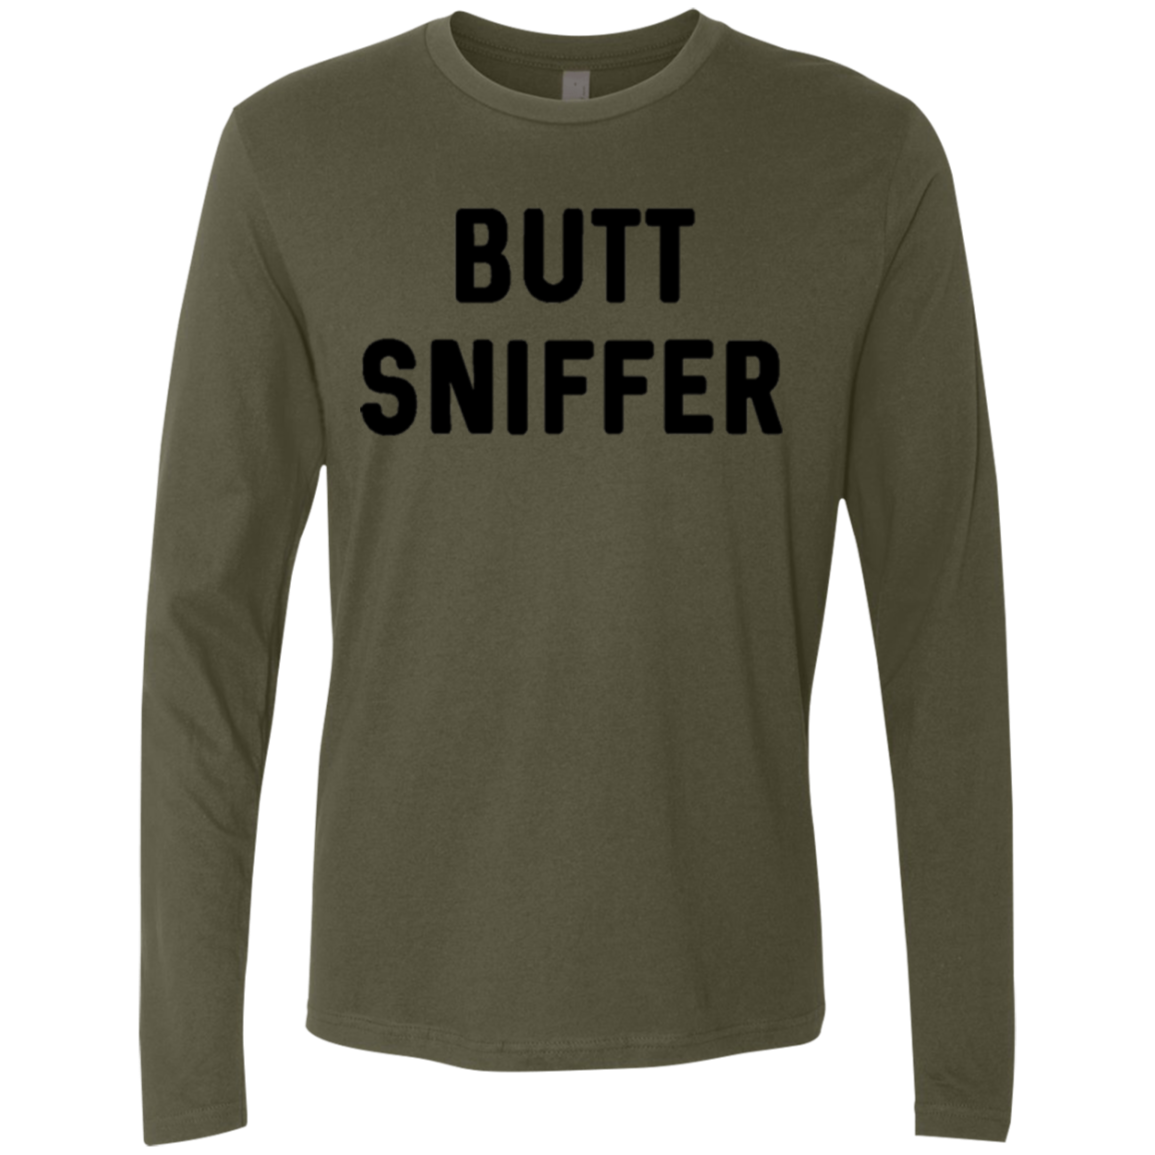 Butt Sniffer Men's Long Sleeve Tee - Trendy Tees